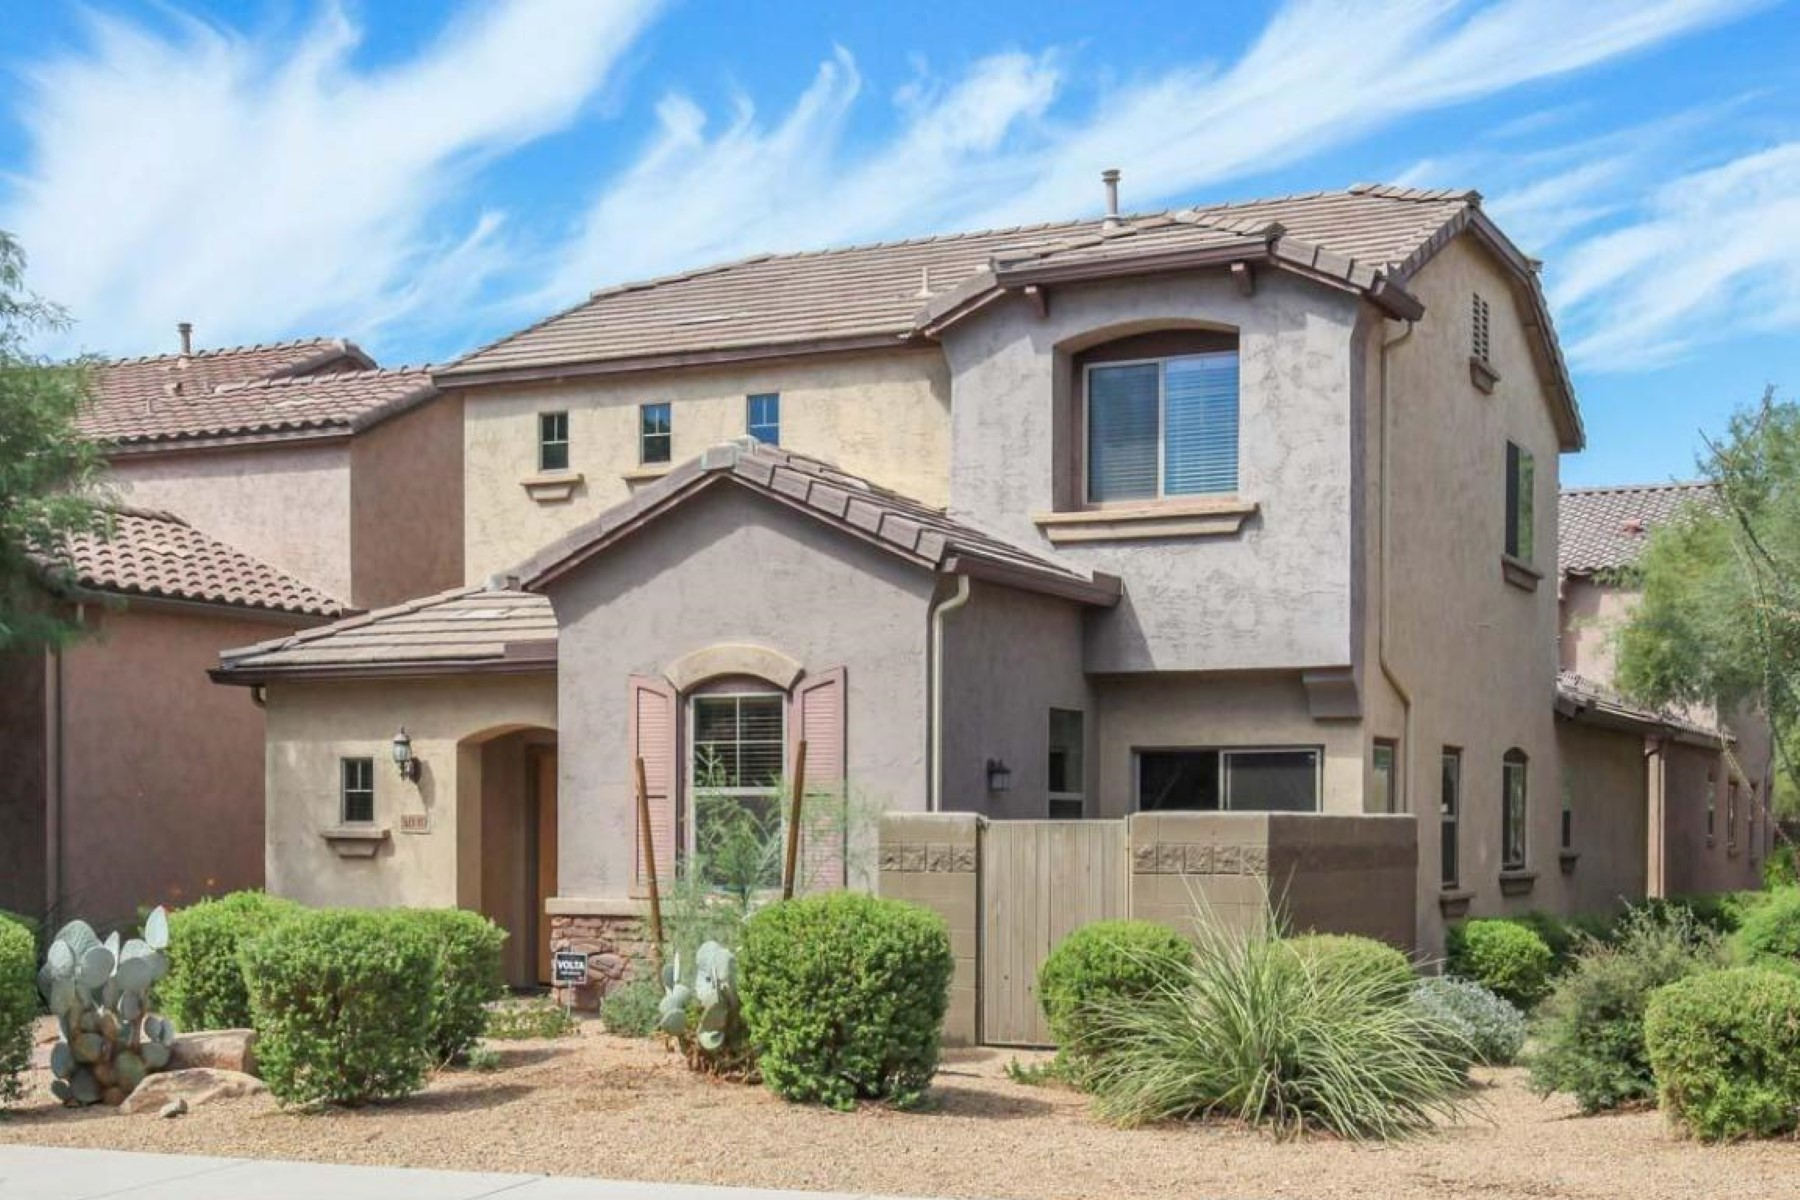 Maison unifamiliale pour l Vente à Wonderful former Ember Court model home in Fireside at Desert Ridge 3810 E Emer Glow Way Phoenix, Arizona 85050 États-Unis